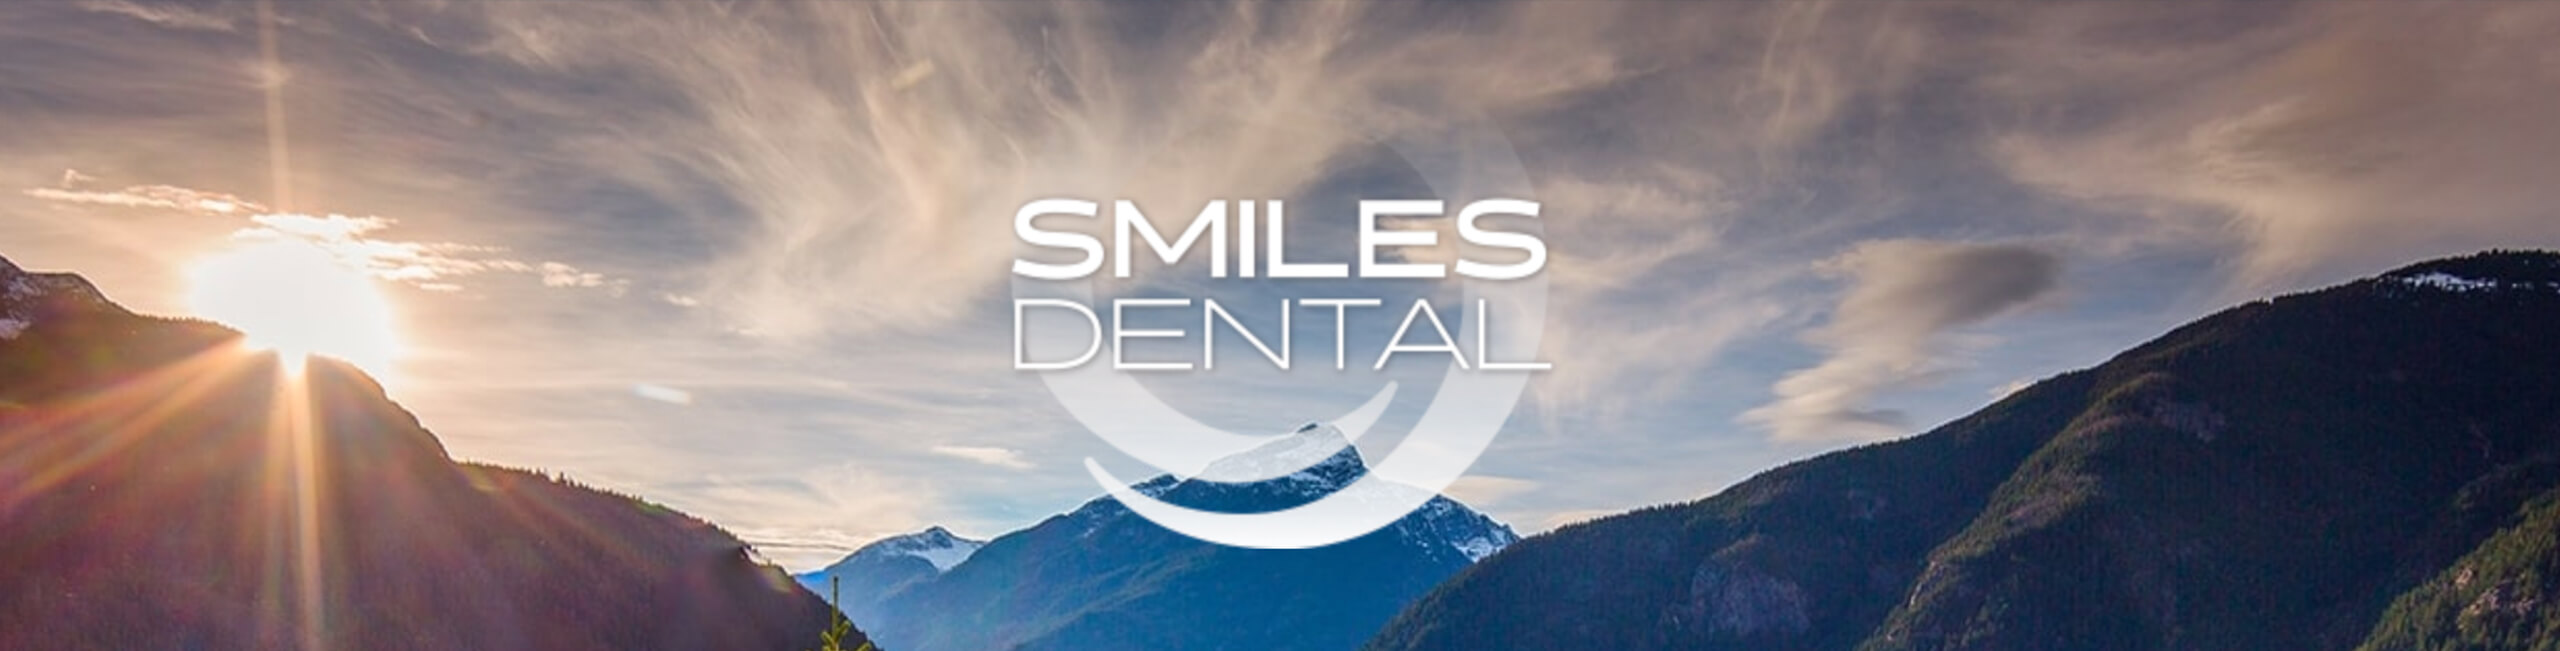 Smiles Dental - Dental Office in the PNW - Header